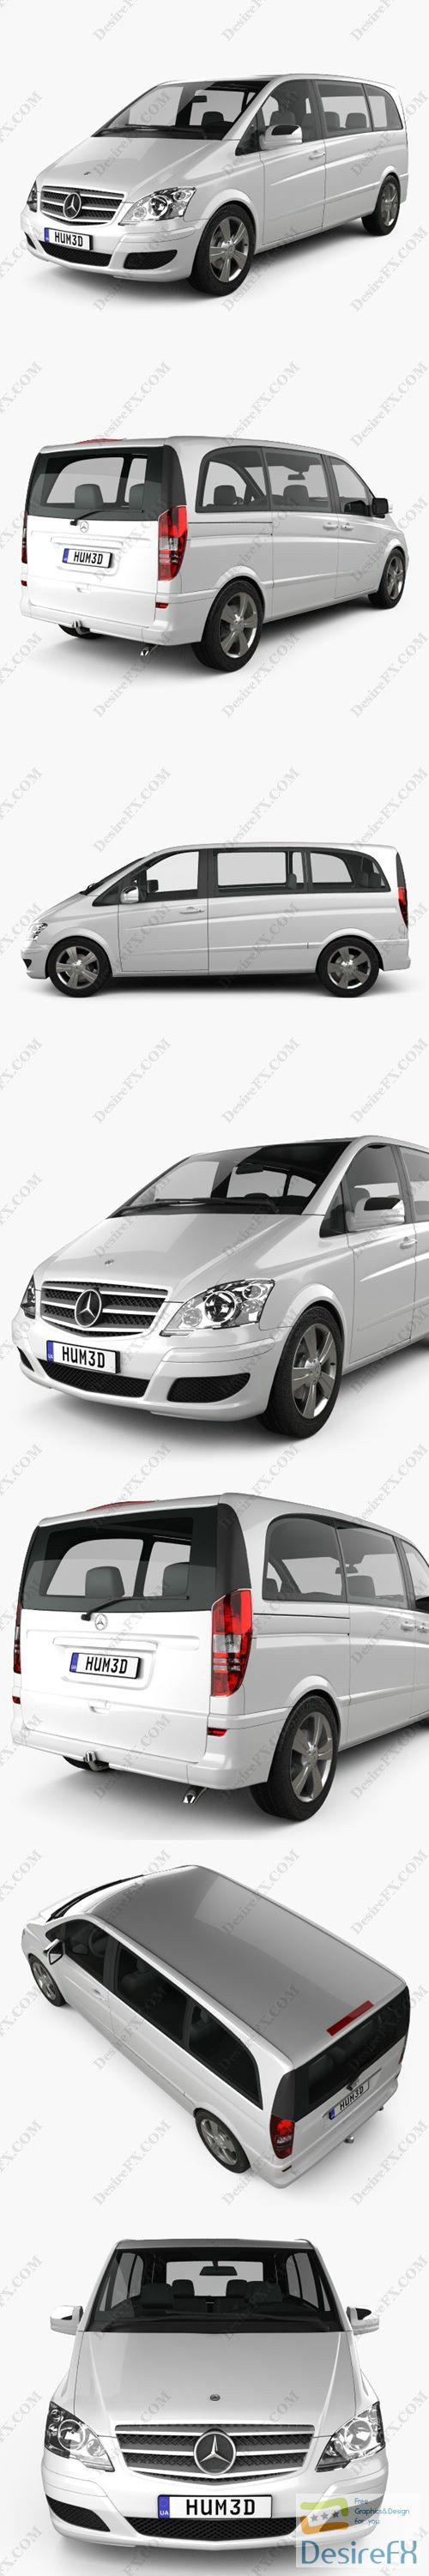 Mercedes-Benz Viano Compact 2011 3D Model